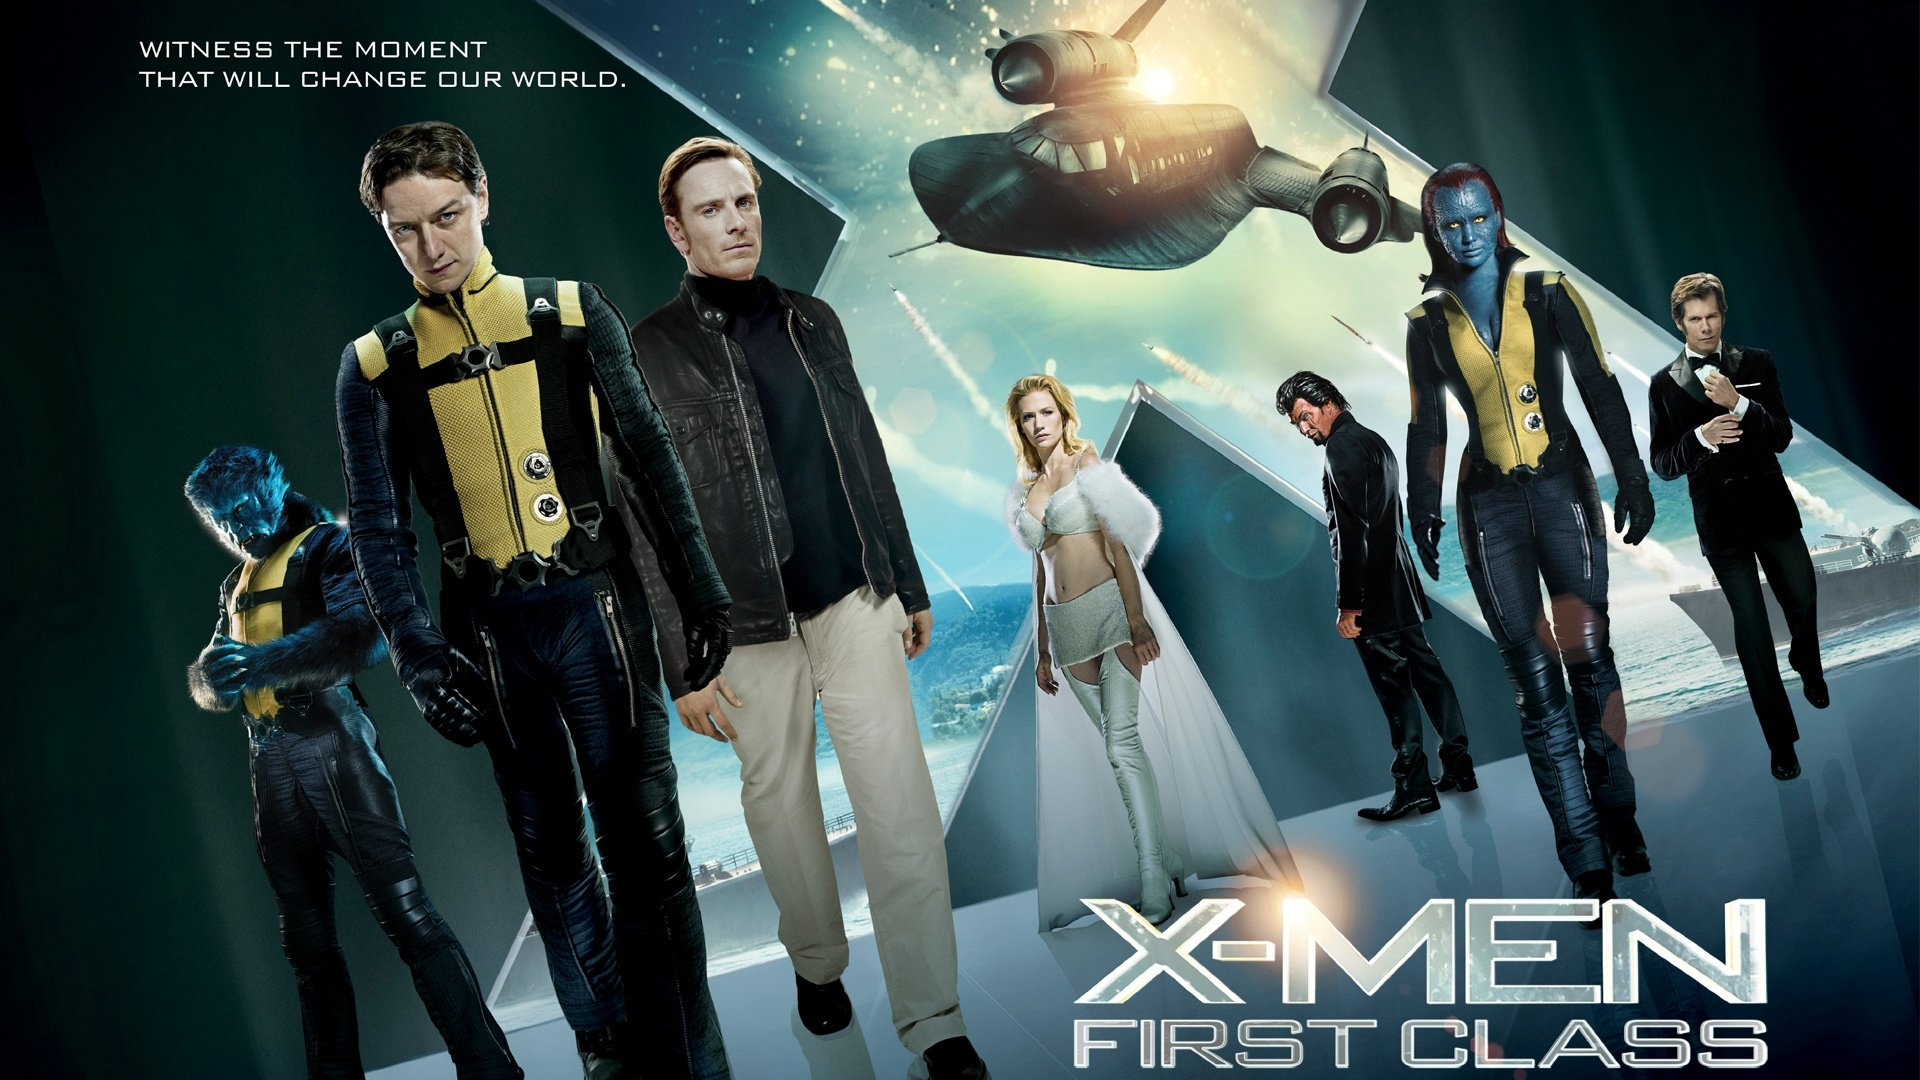 Awesome X Men First Class Free Wallpaper ID339406 For Full Hd PC